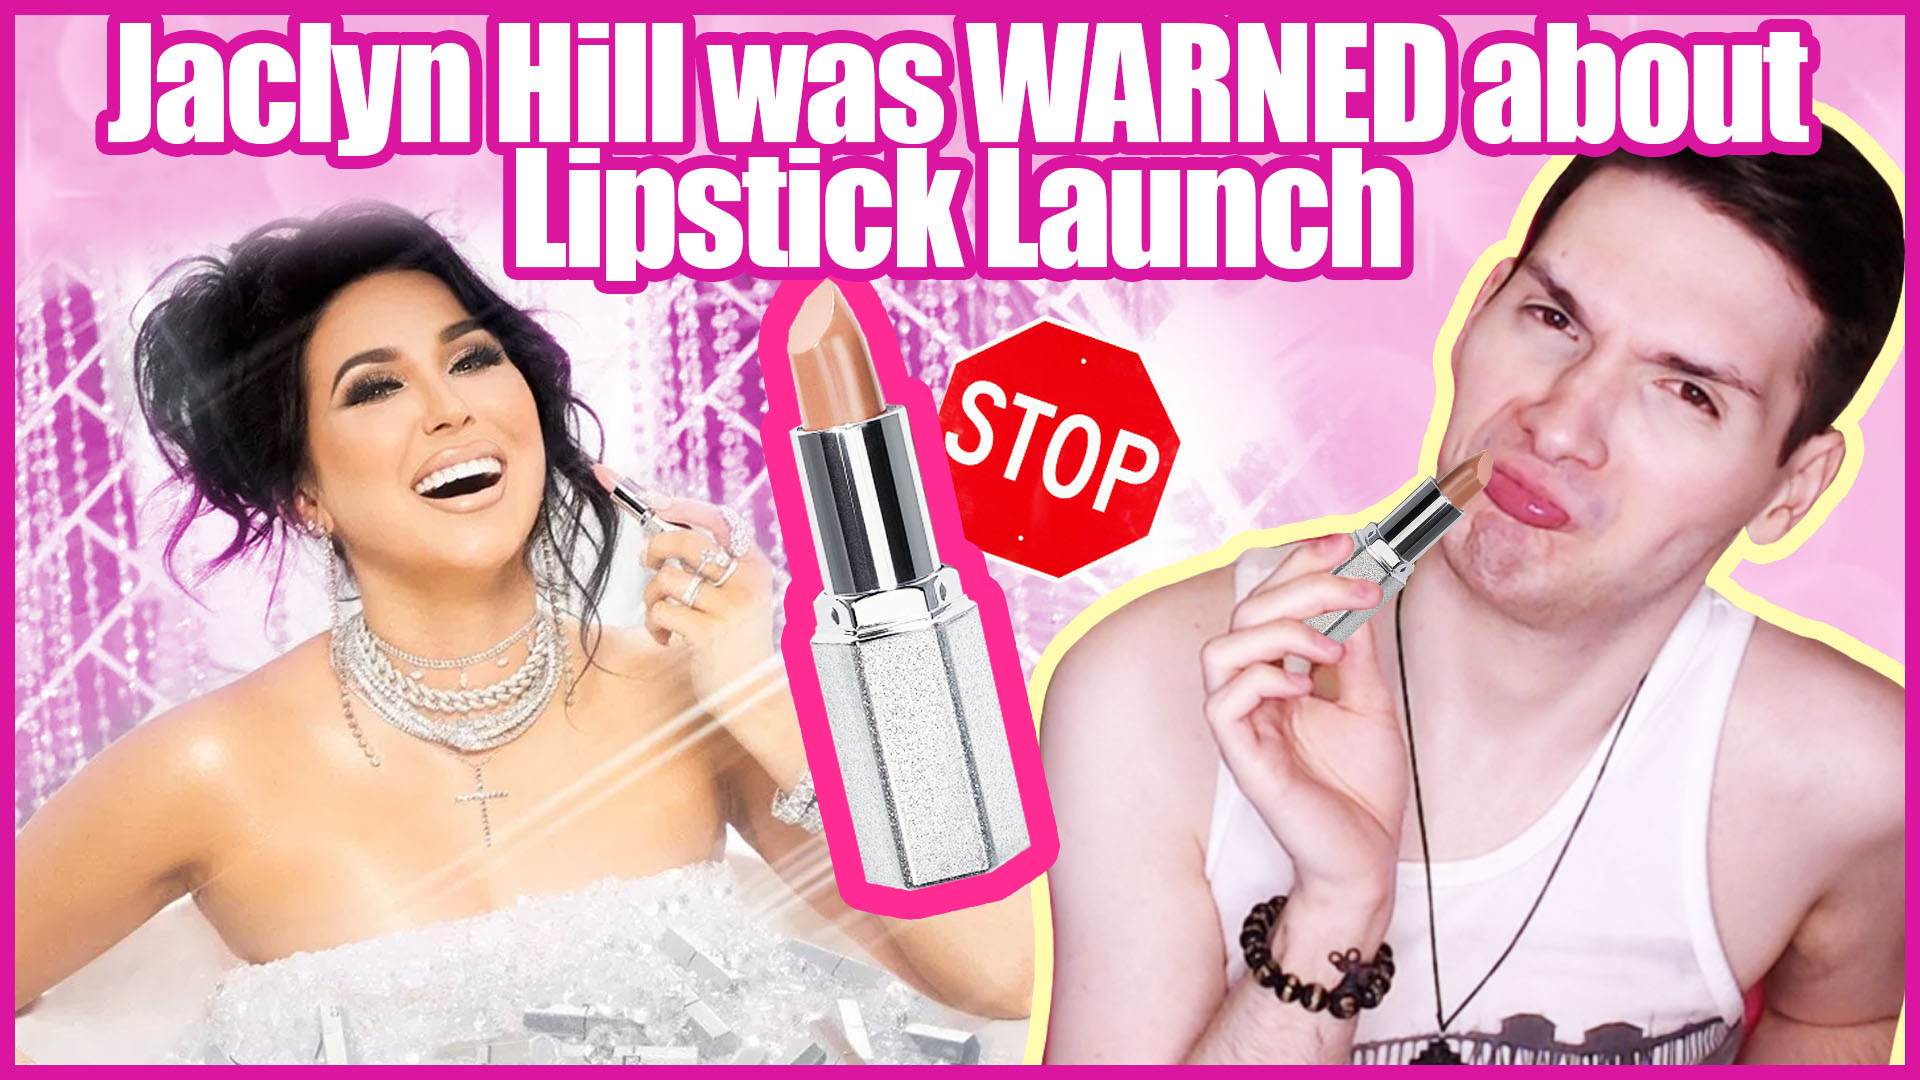 Jaclyn Hill Lipstick Launch Scandal